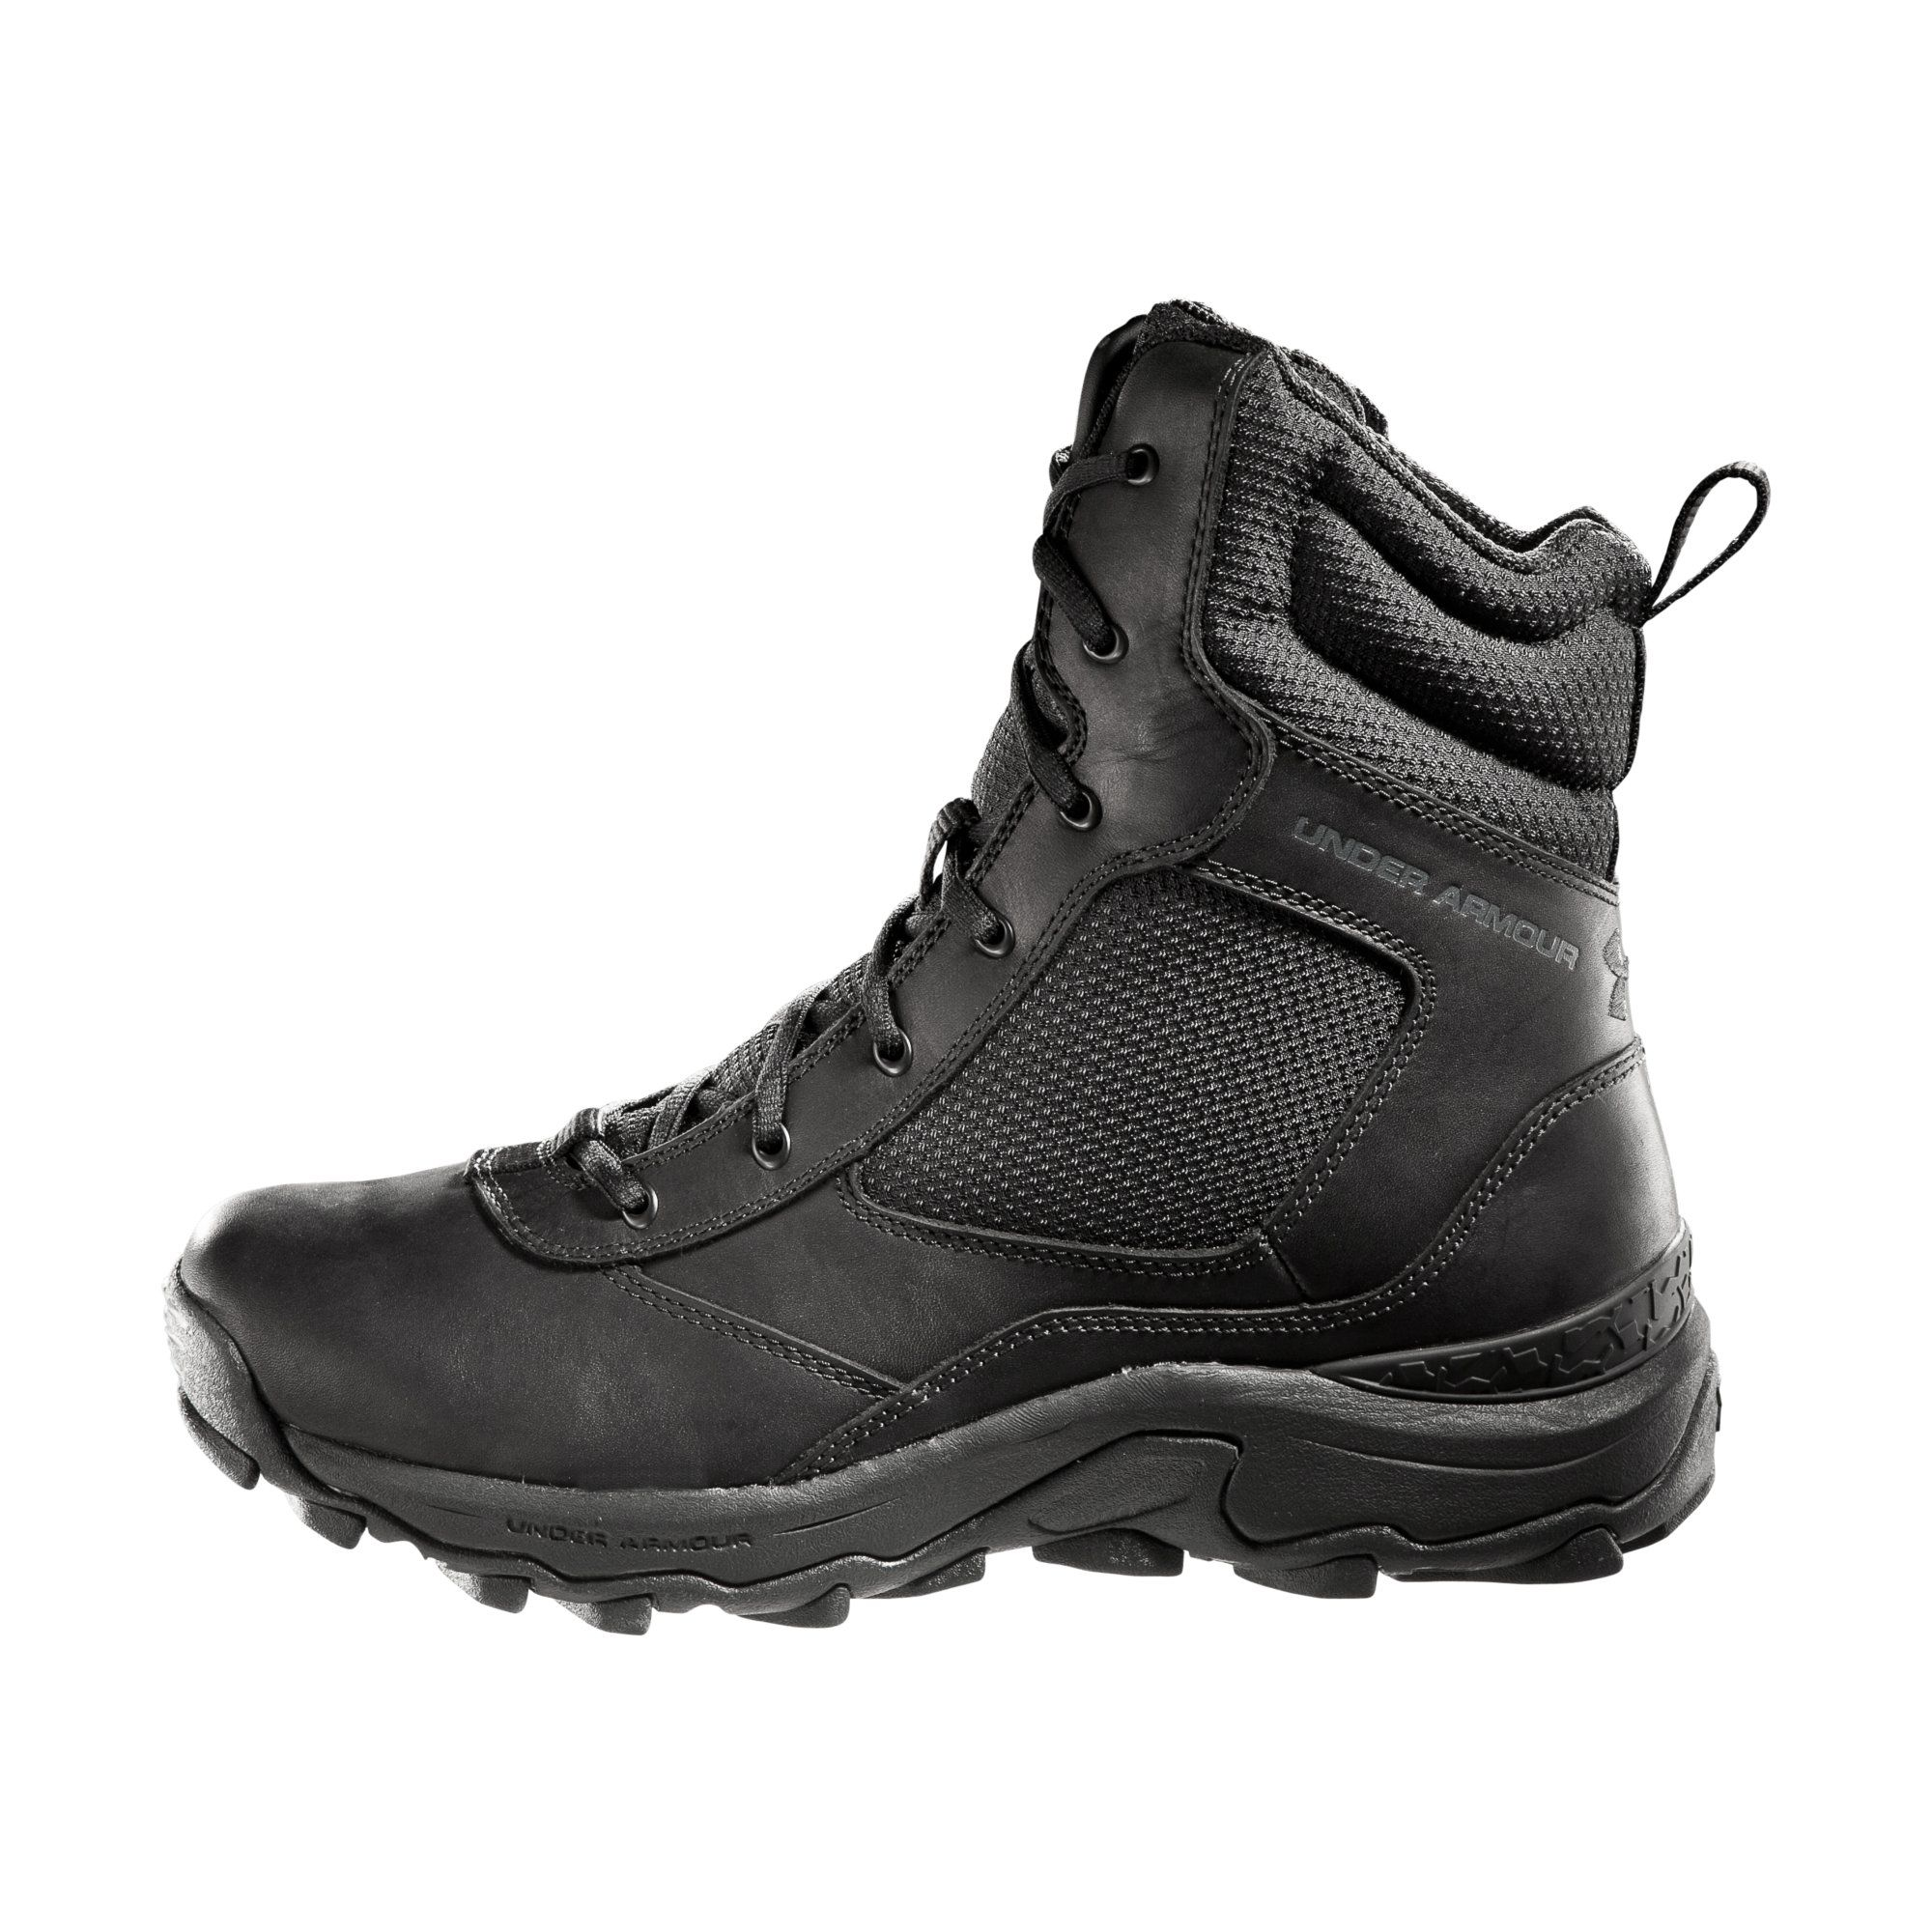 f6c54904df9 Pin by Lobzang Penjor on Boots | Boots, Hiking boots, Combat boots